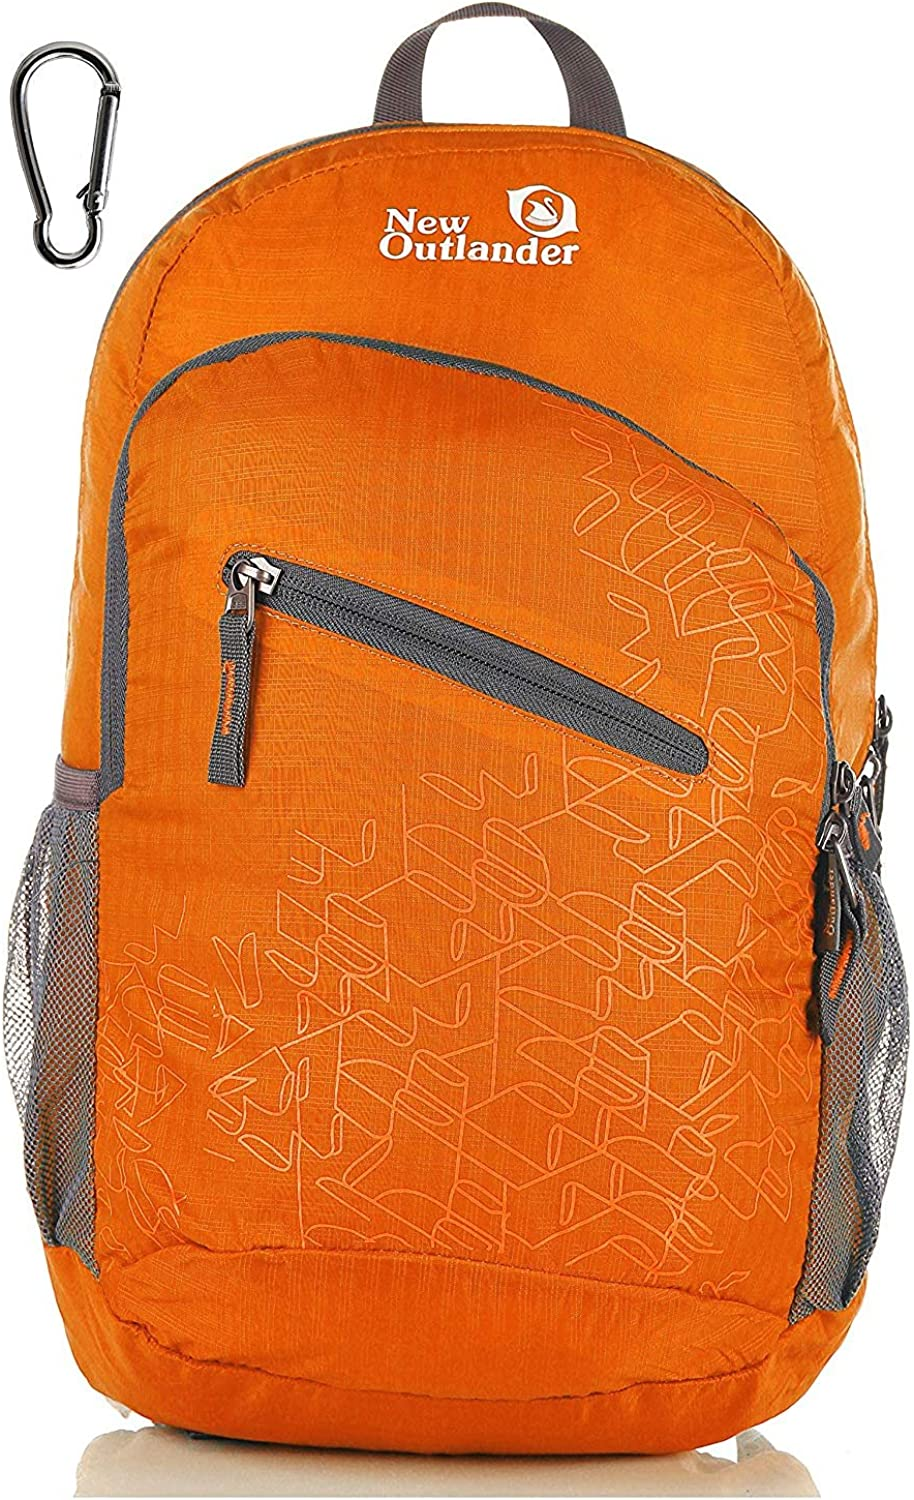 Outlander Ultra Lightweight Packable Water Resistant Travel Hiking Backpack Daypack Handy Foldable Camping Outdoor Backpack : Clothing